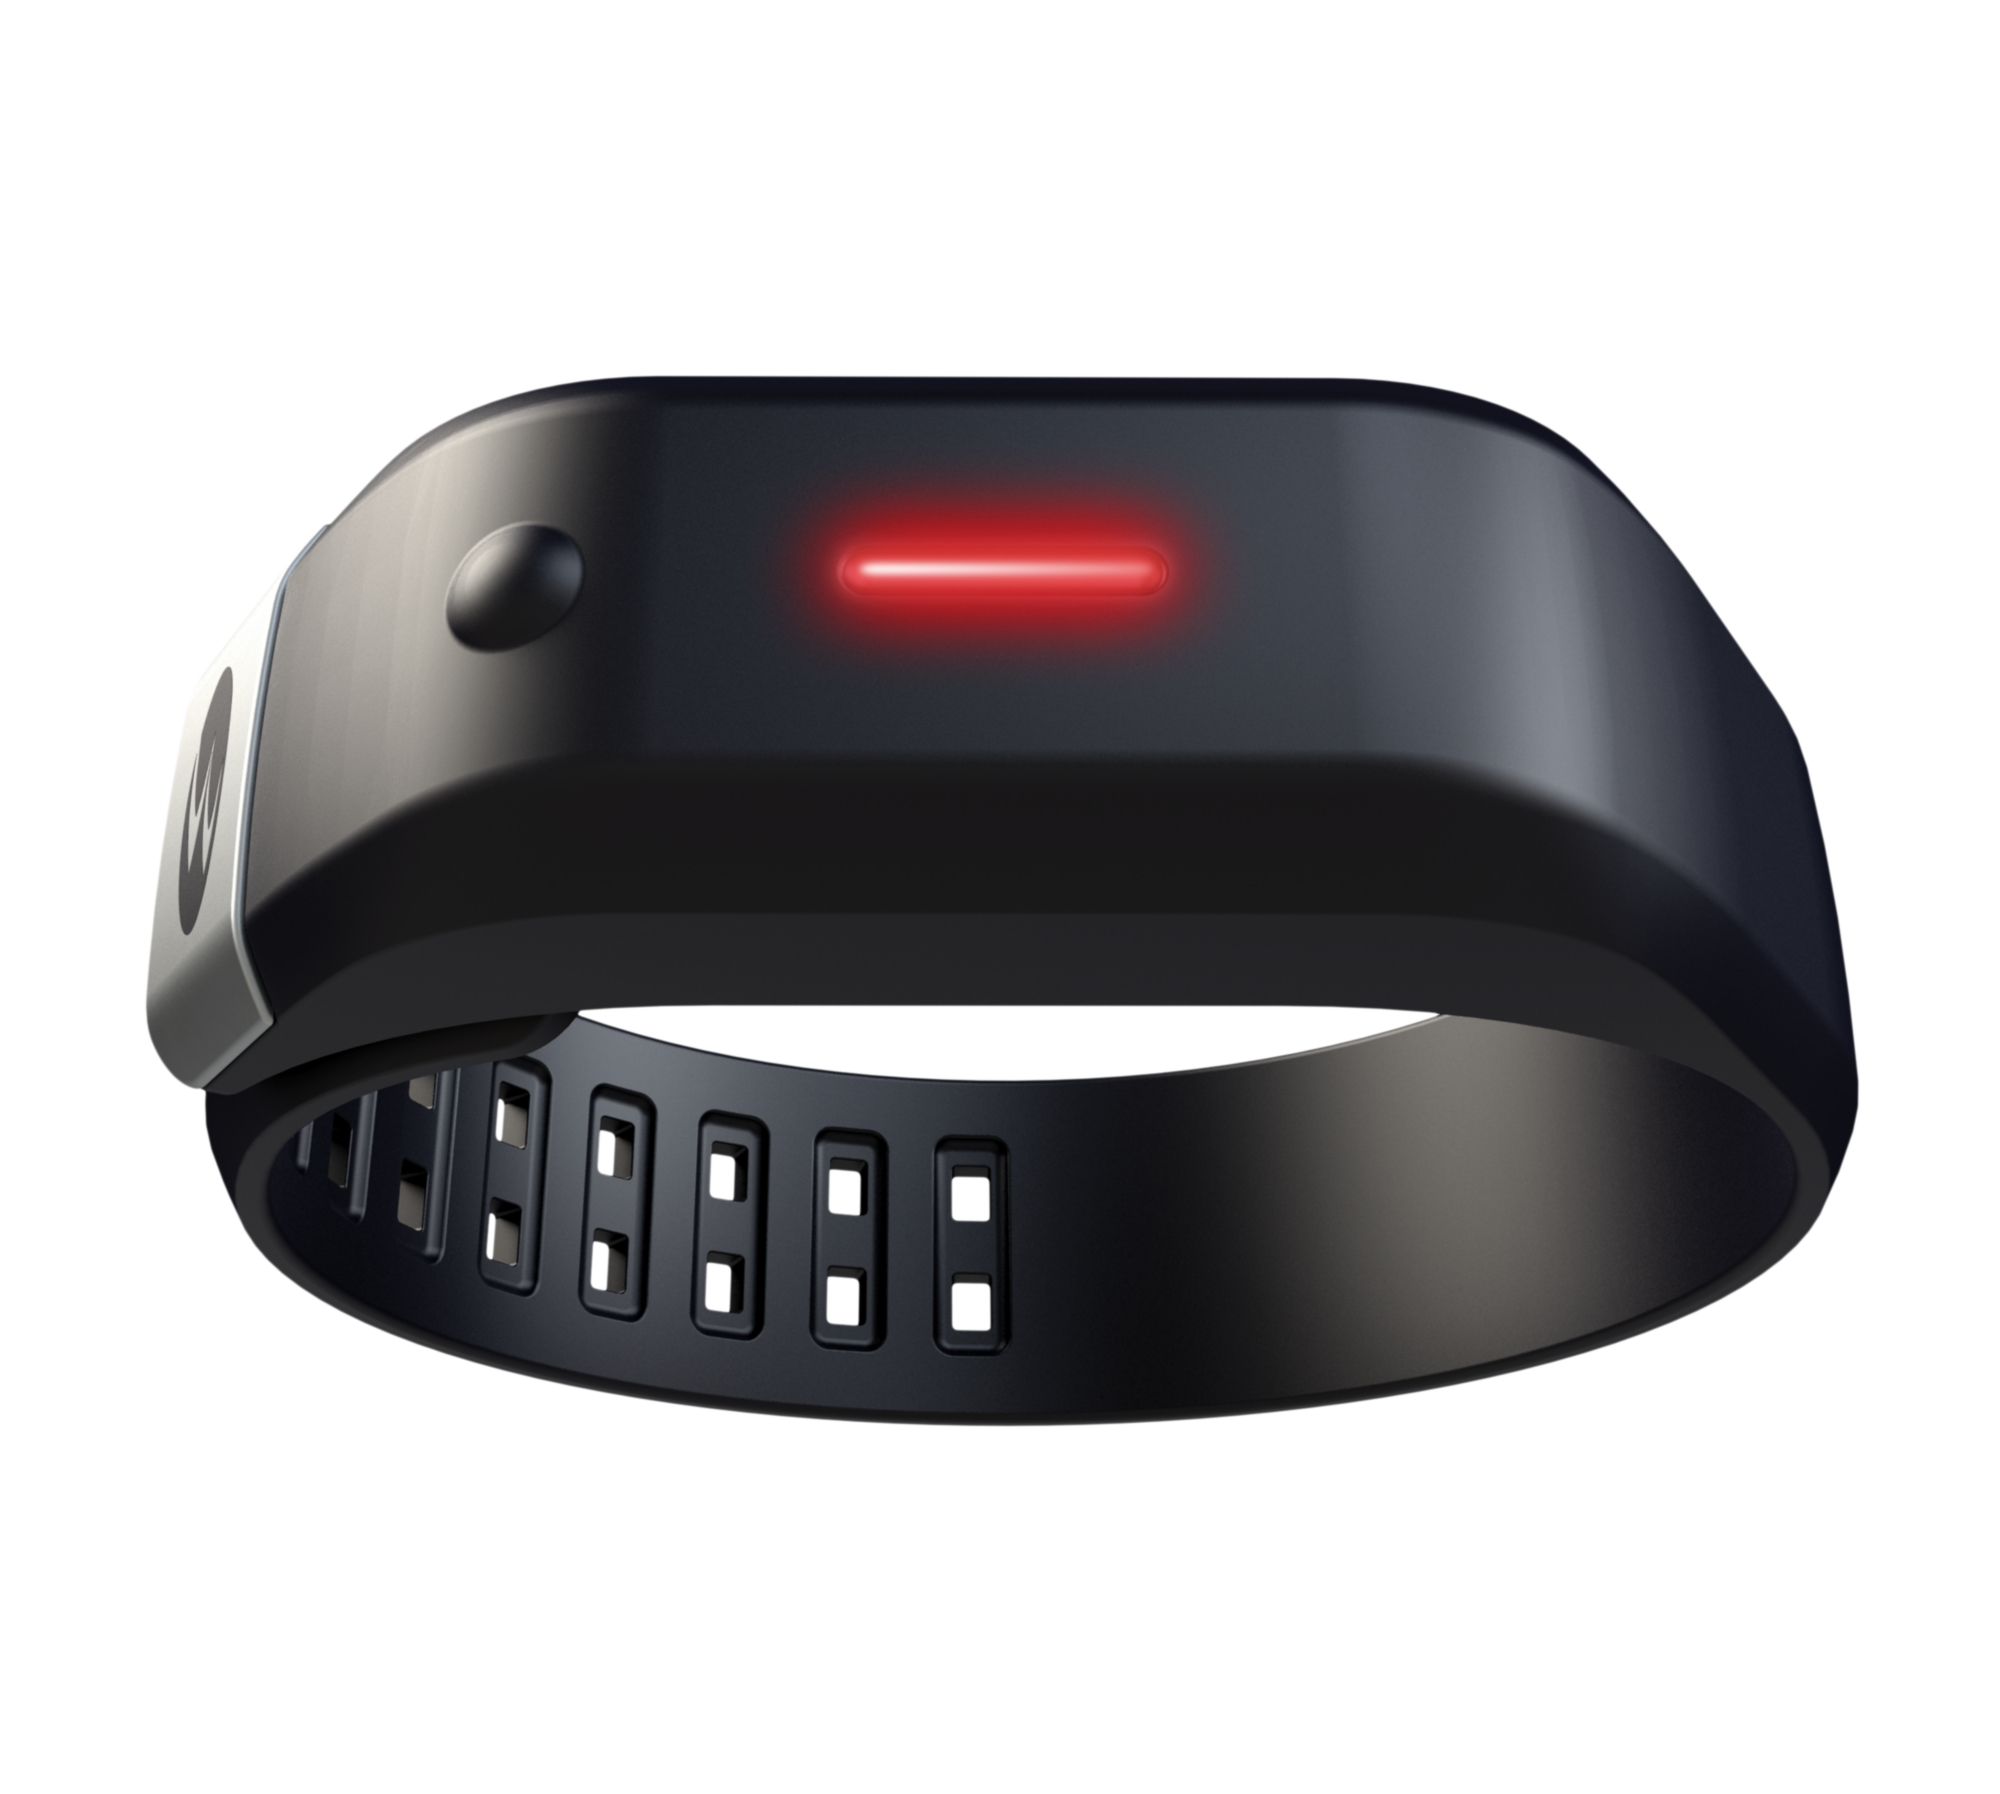 The Bowflex Boost ($50) has many of the same basic features as any fitness tracker but comes at a much friendlier price. Help Dad track calories, steps, and distance as well as sleep stats — all of which sync to the accompanying iPhone app.